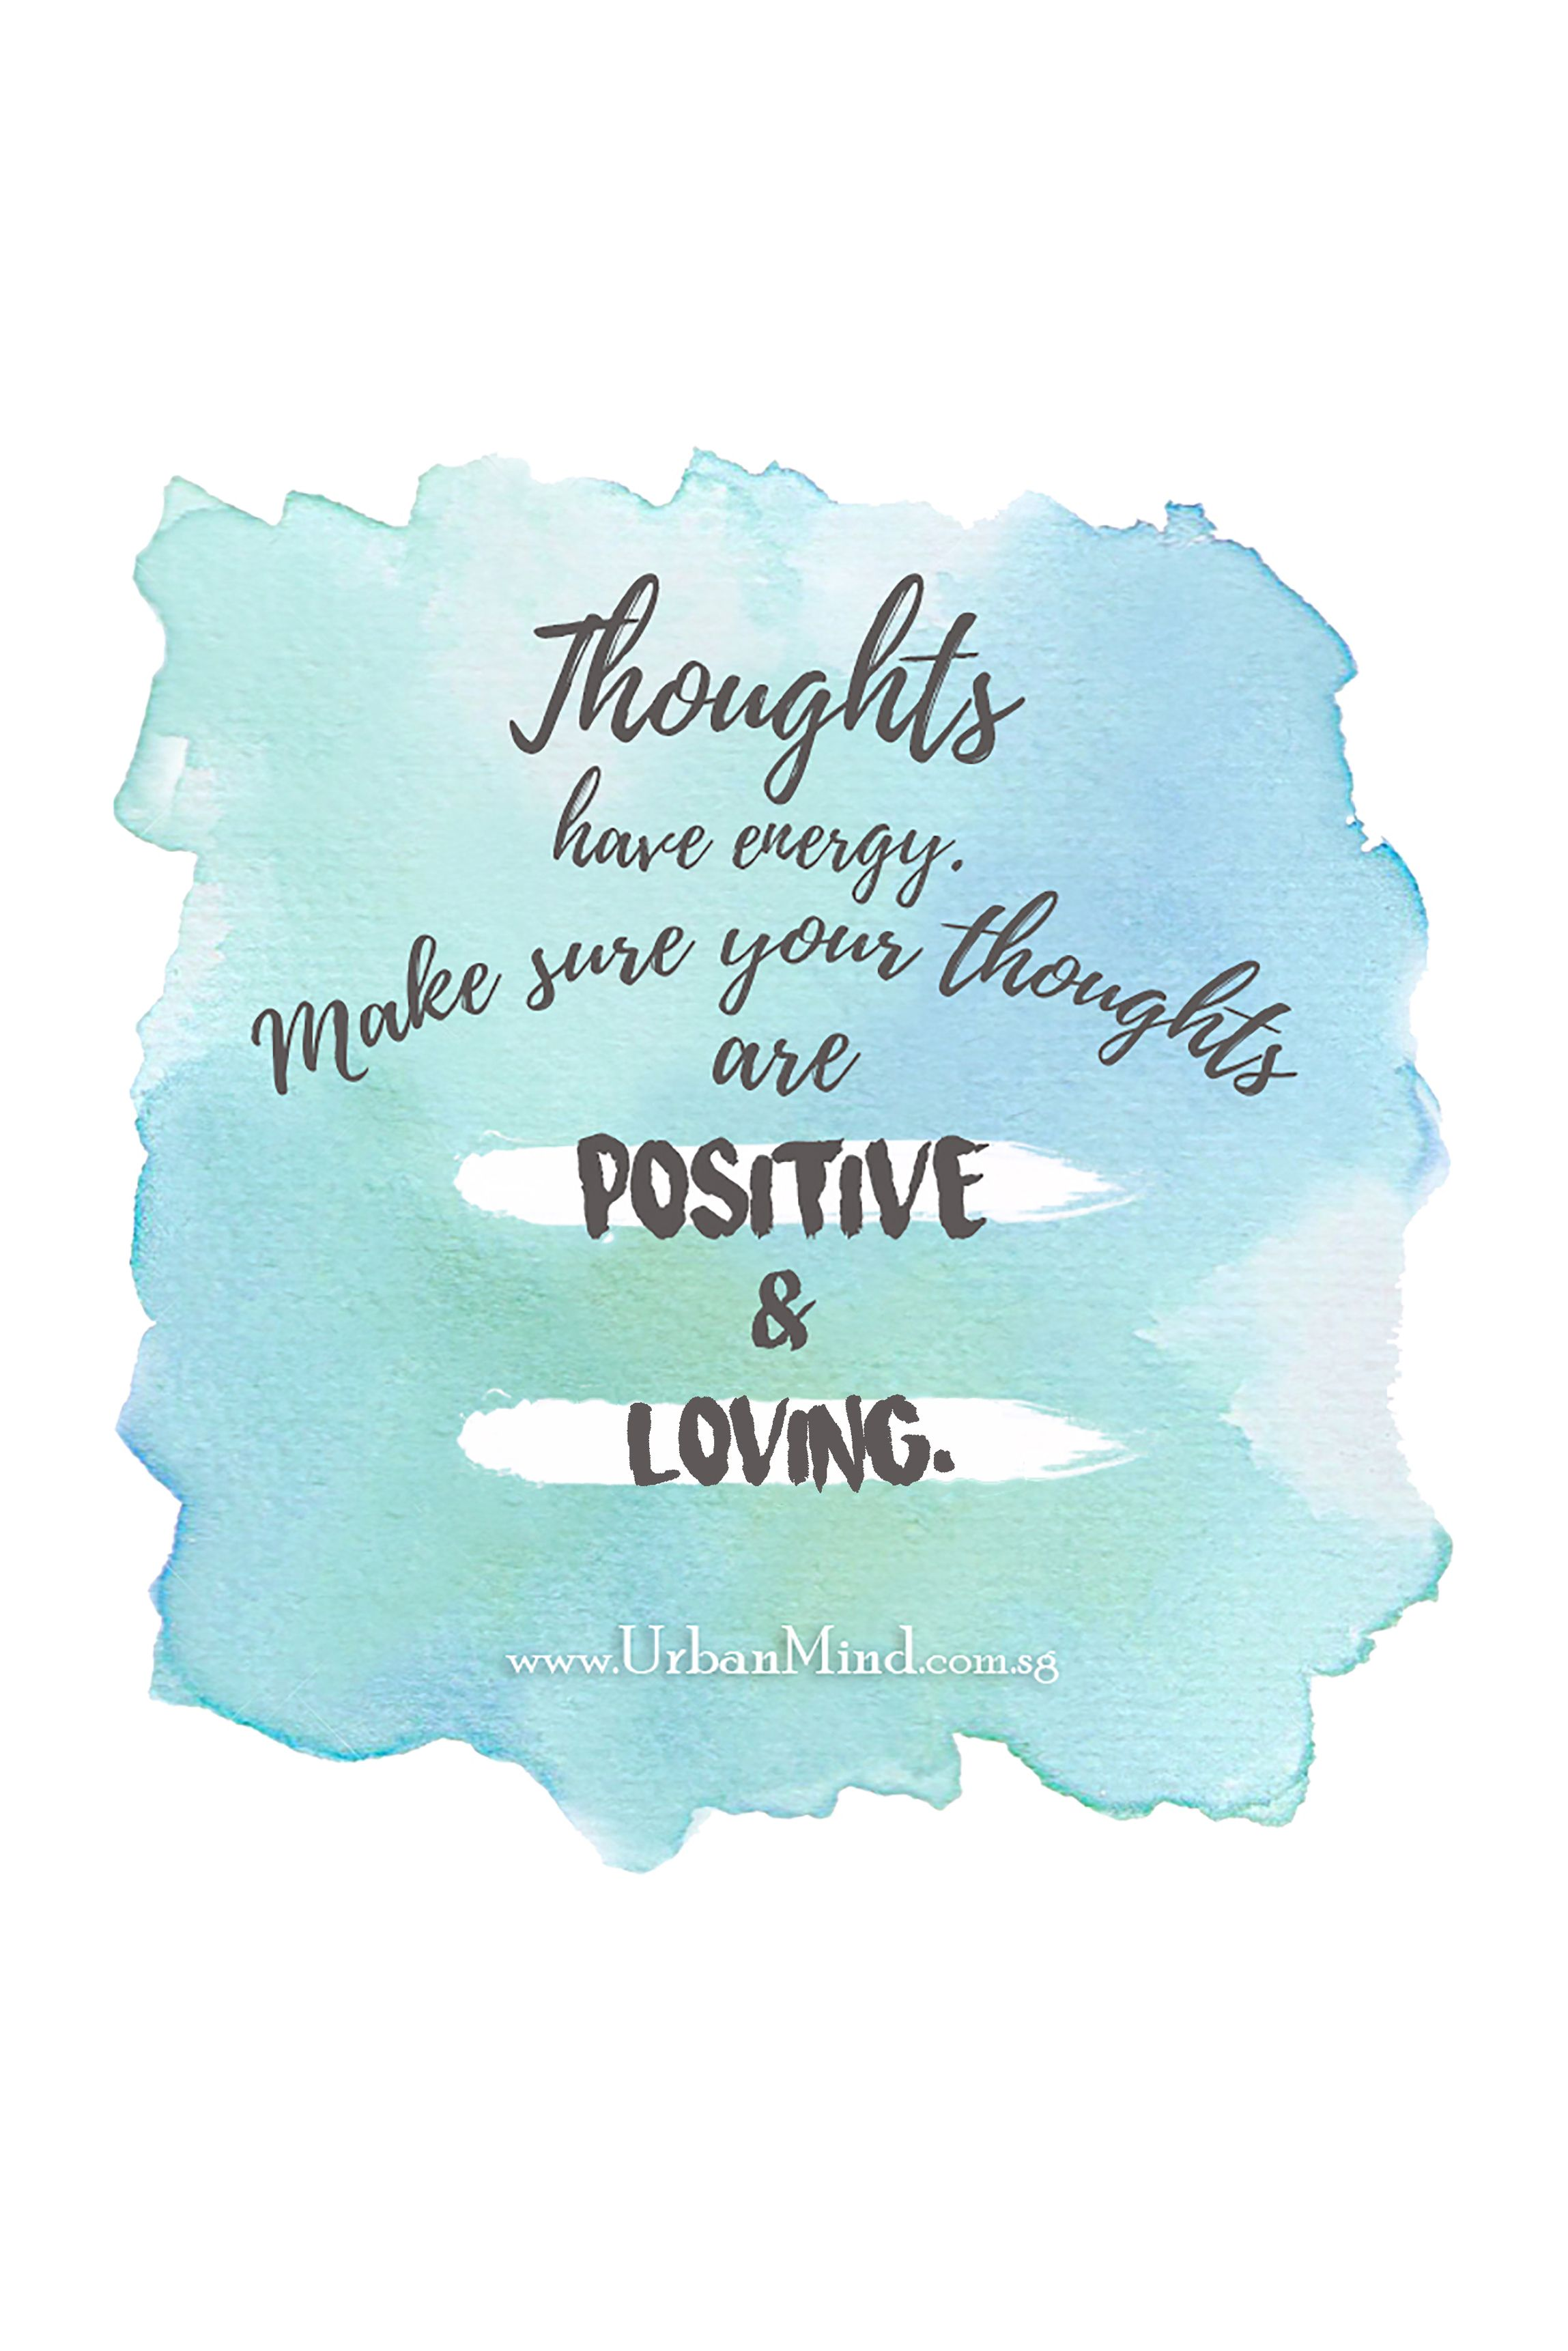 Maintain a positive thoughts today! @urbanmindsg #positiveenerg